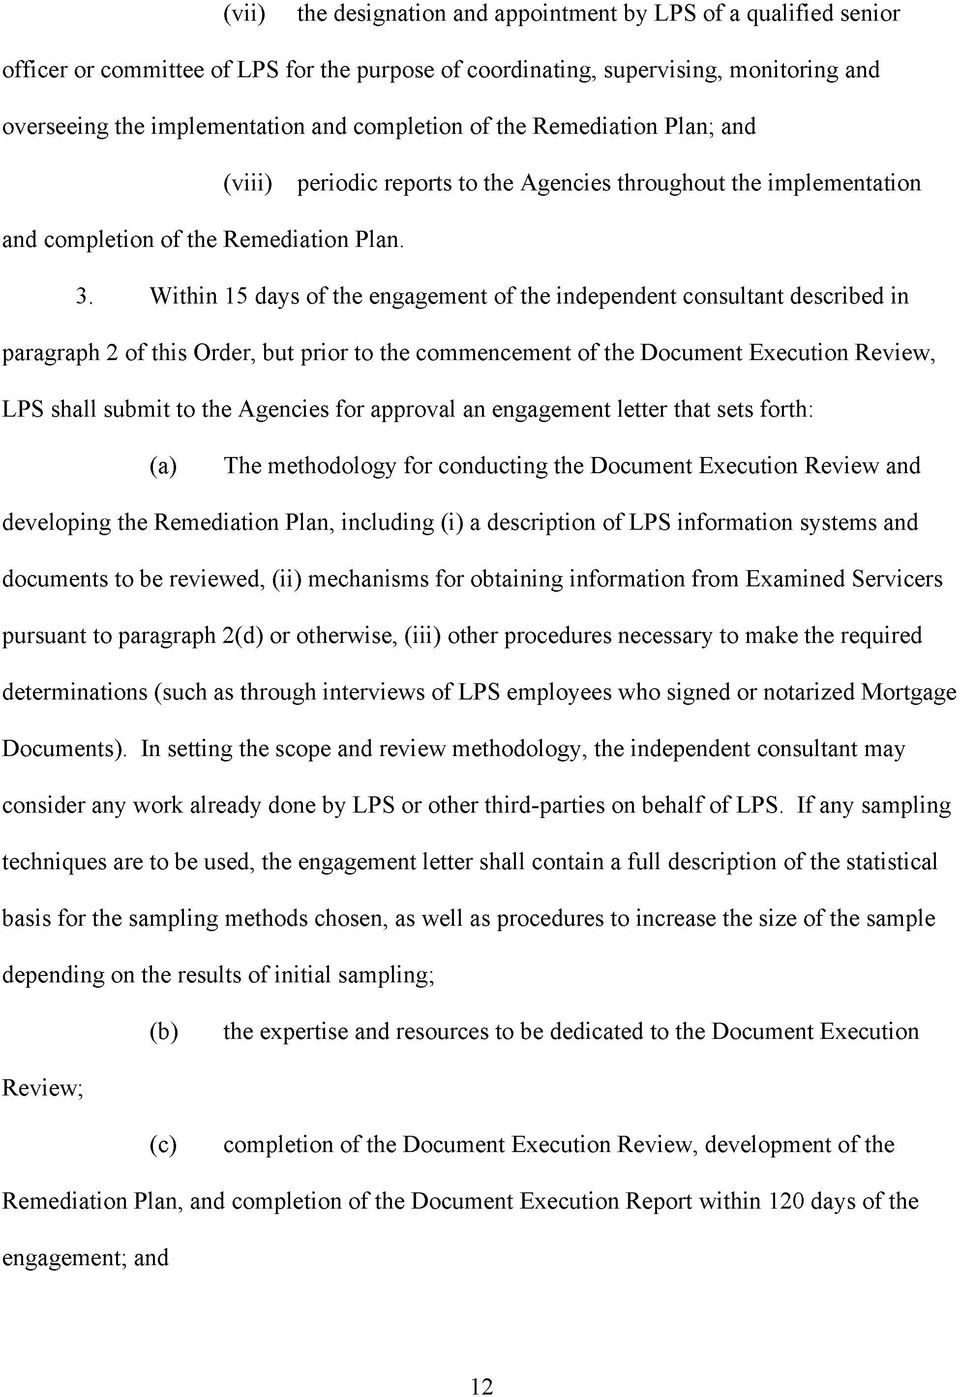 Within 15 days of the engagement of the independent consultant described in paragraph 2 of this Order, but prior to the commencement of the Document Execution Review, LPS shall submit to the Agencies